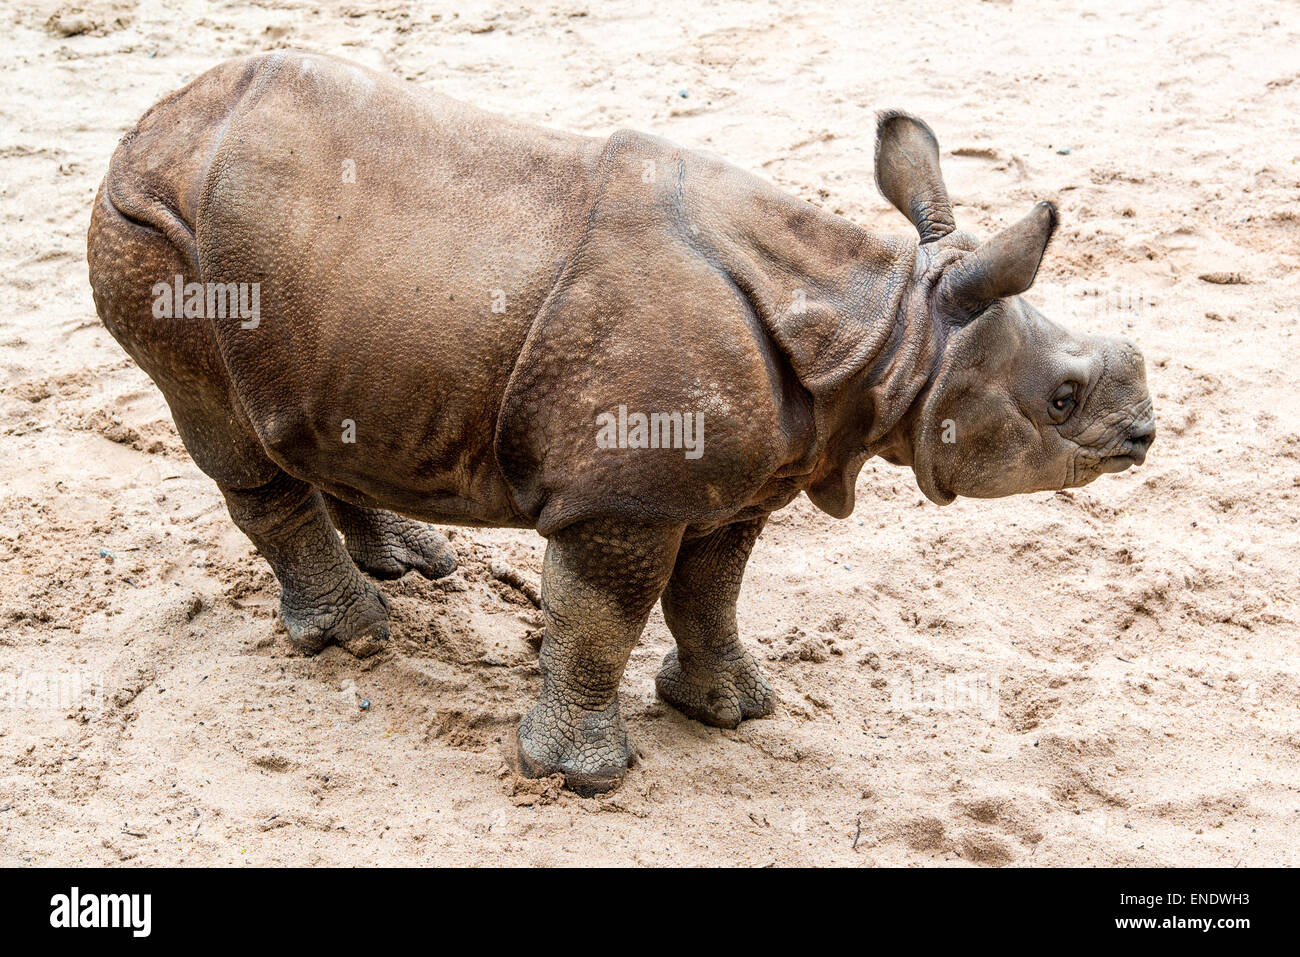 Young Indian one-horned rhinoceros (6 months old) - Stock Image